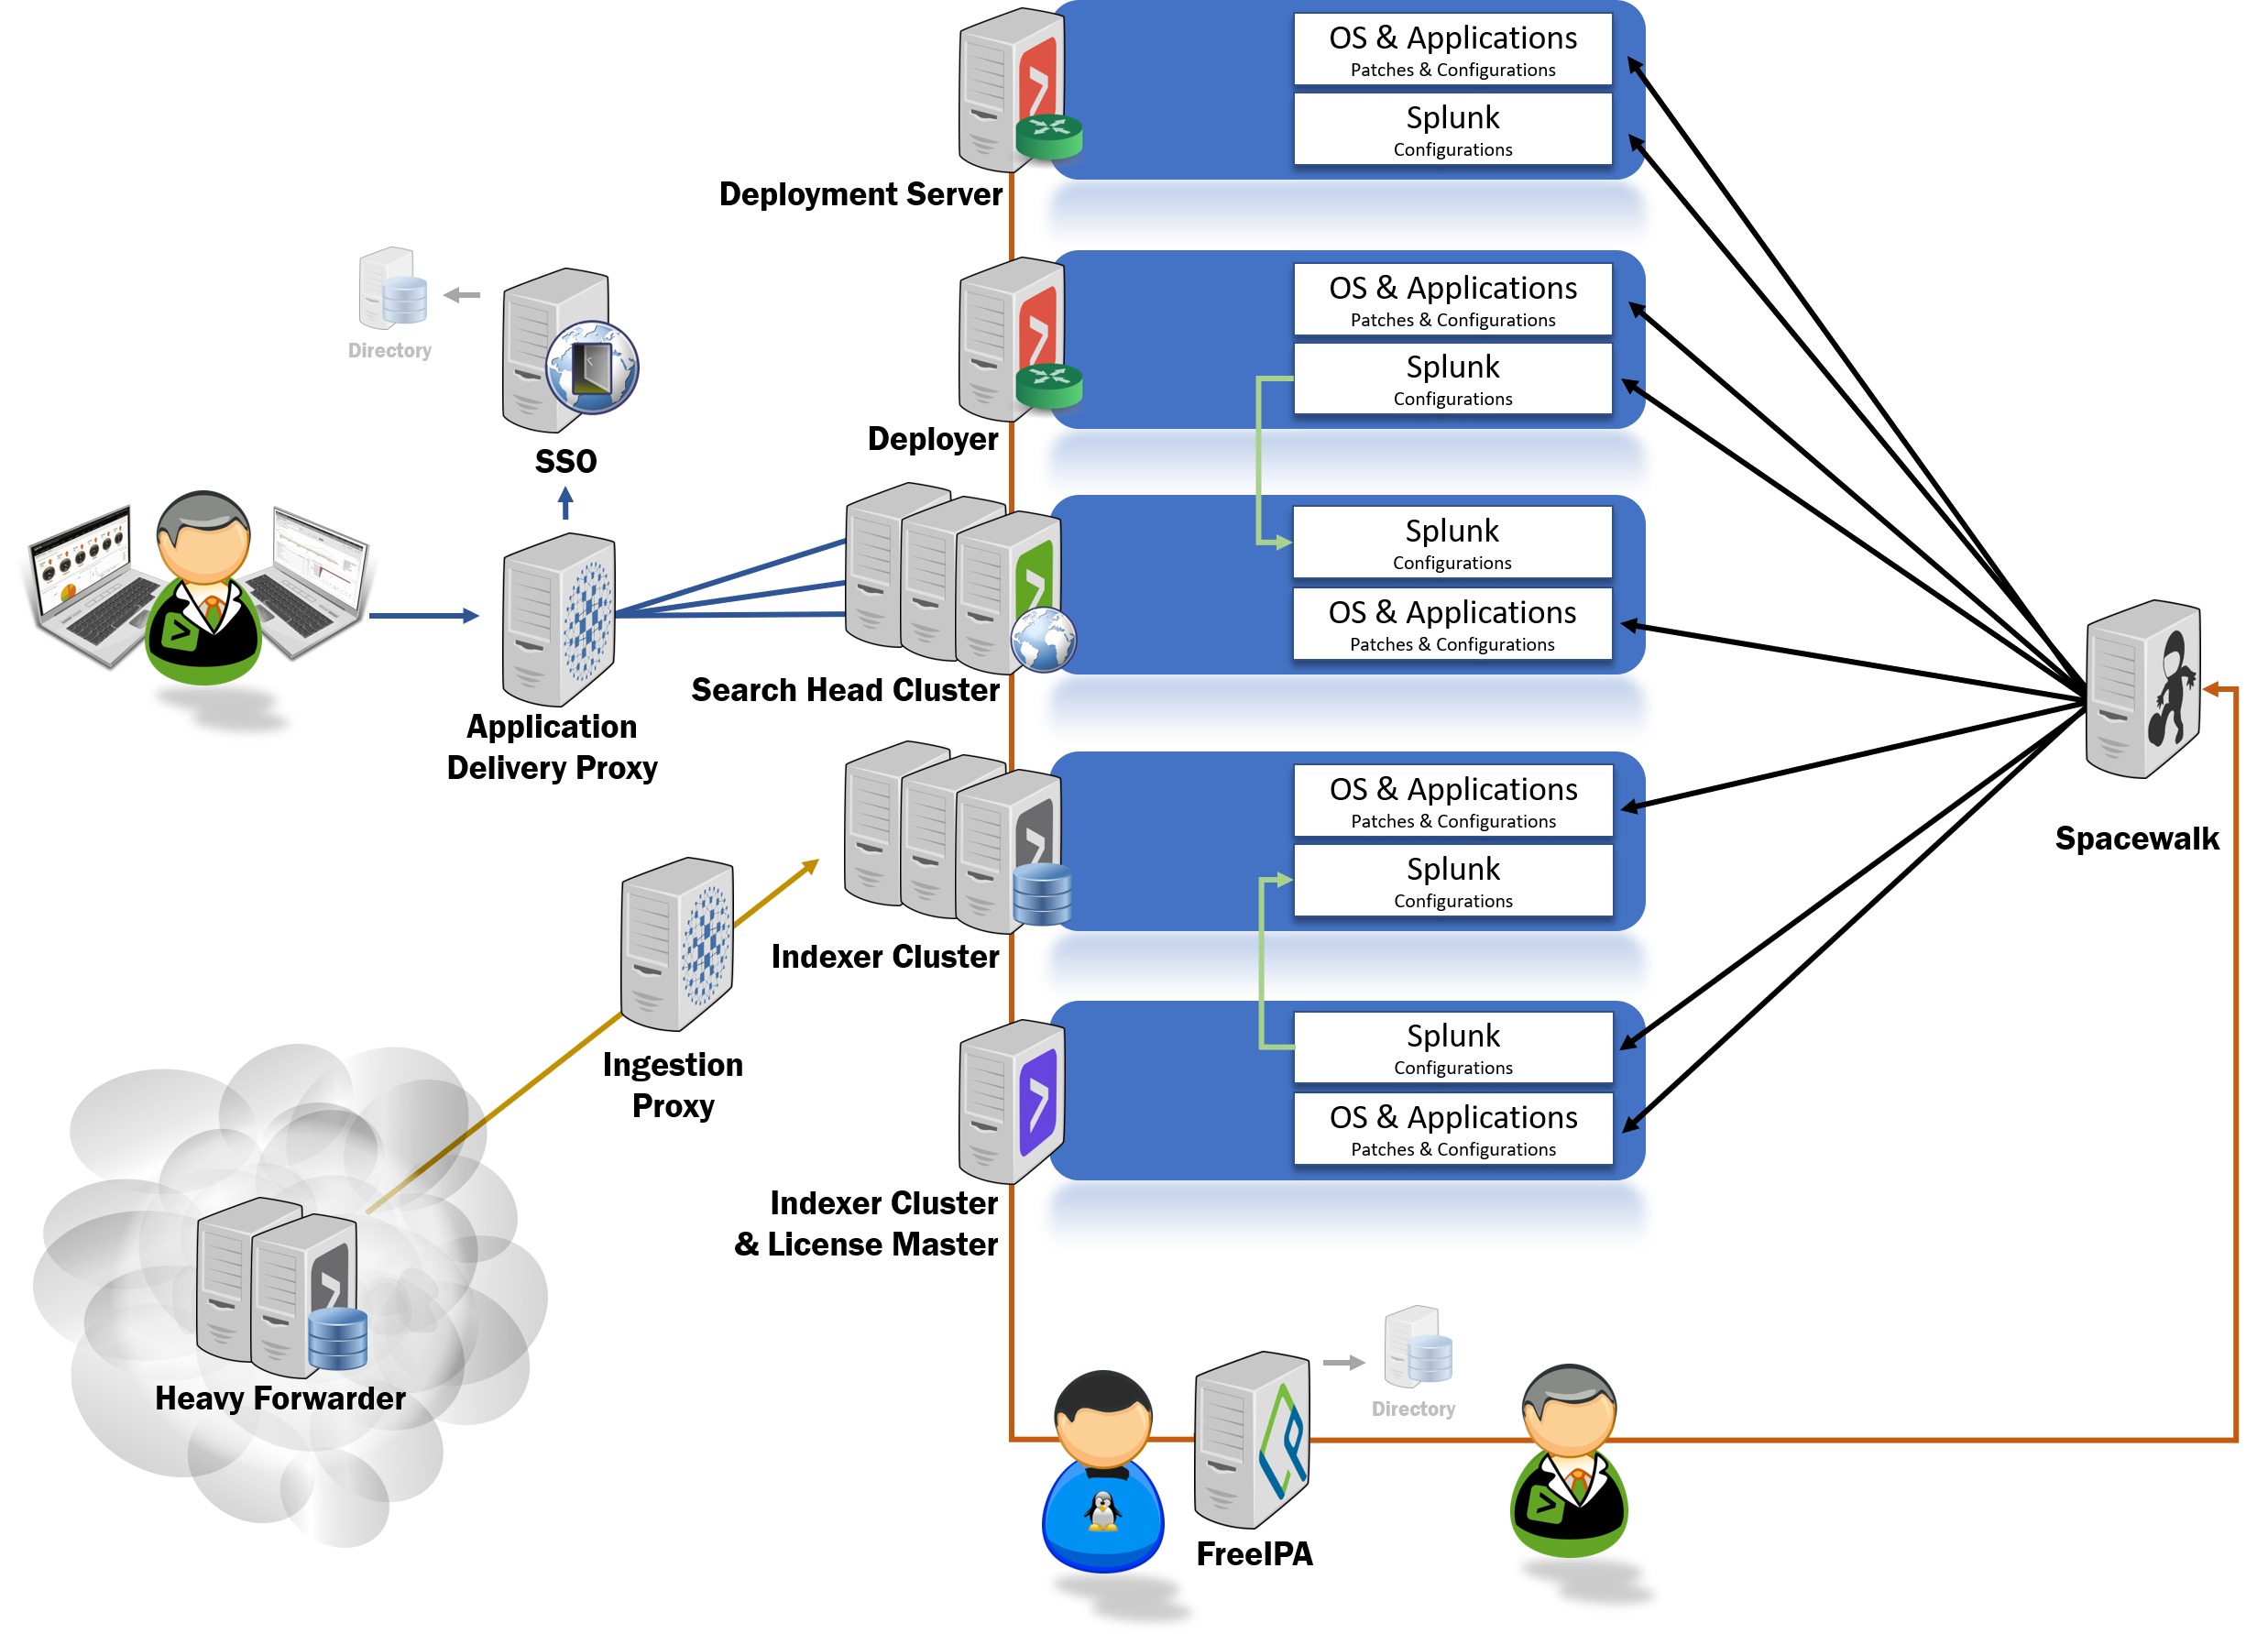 Mint Security - Splunk delivery models